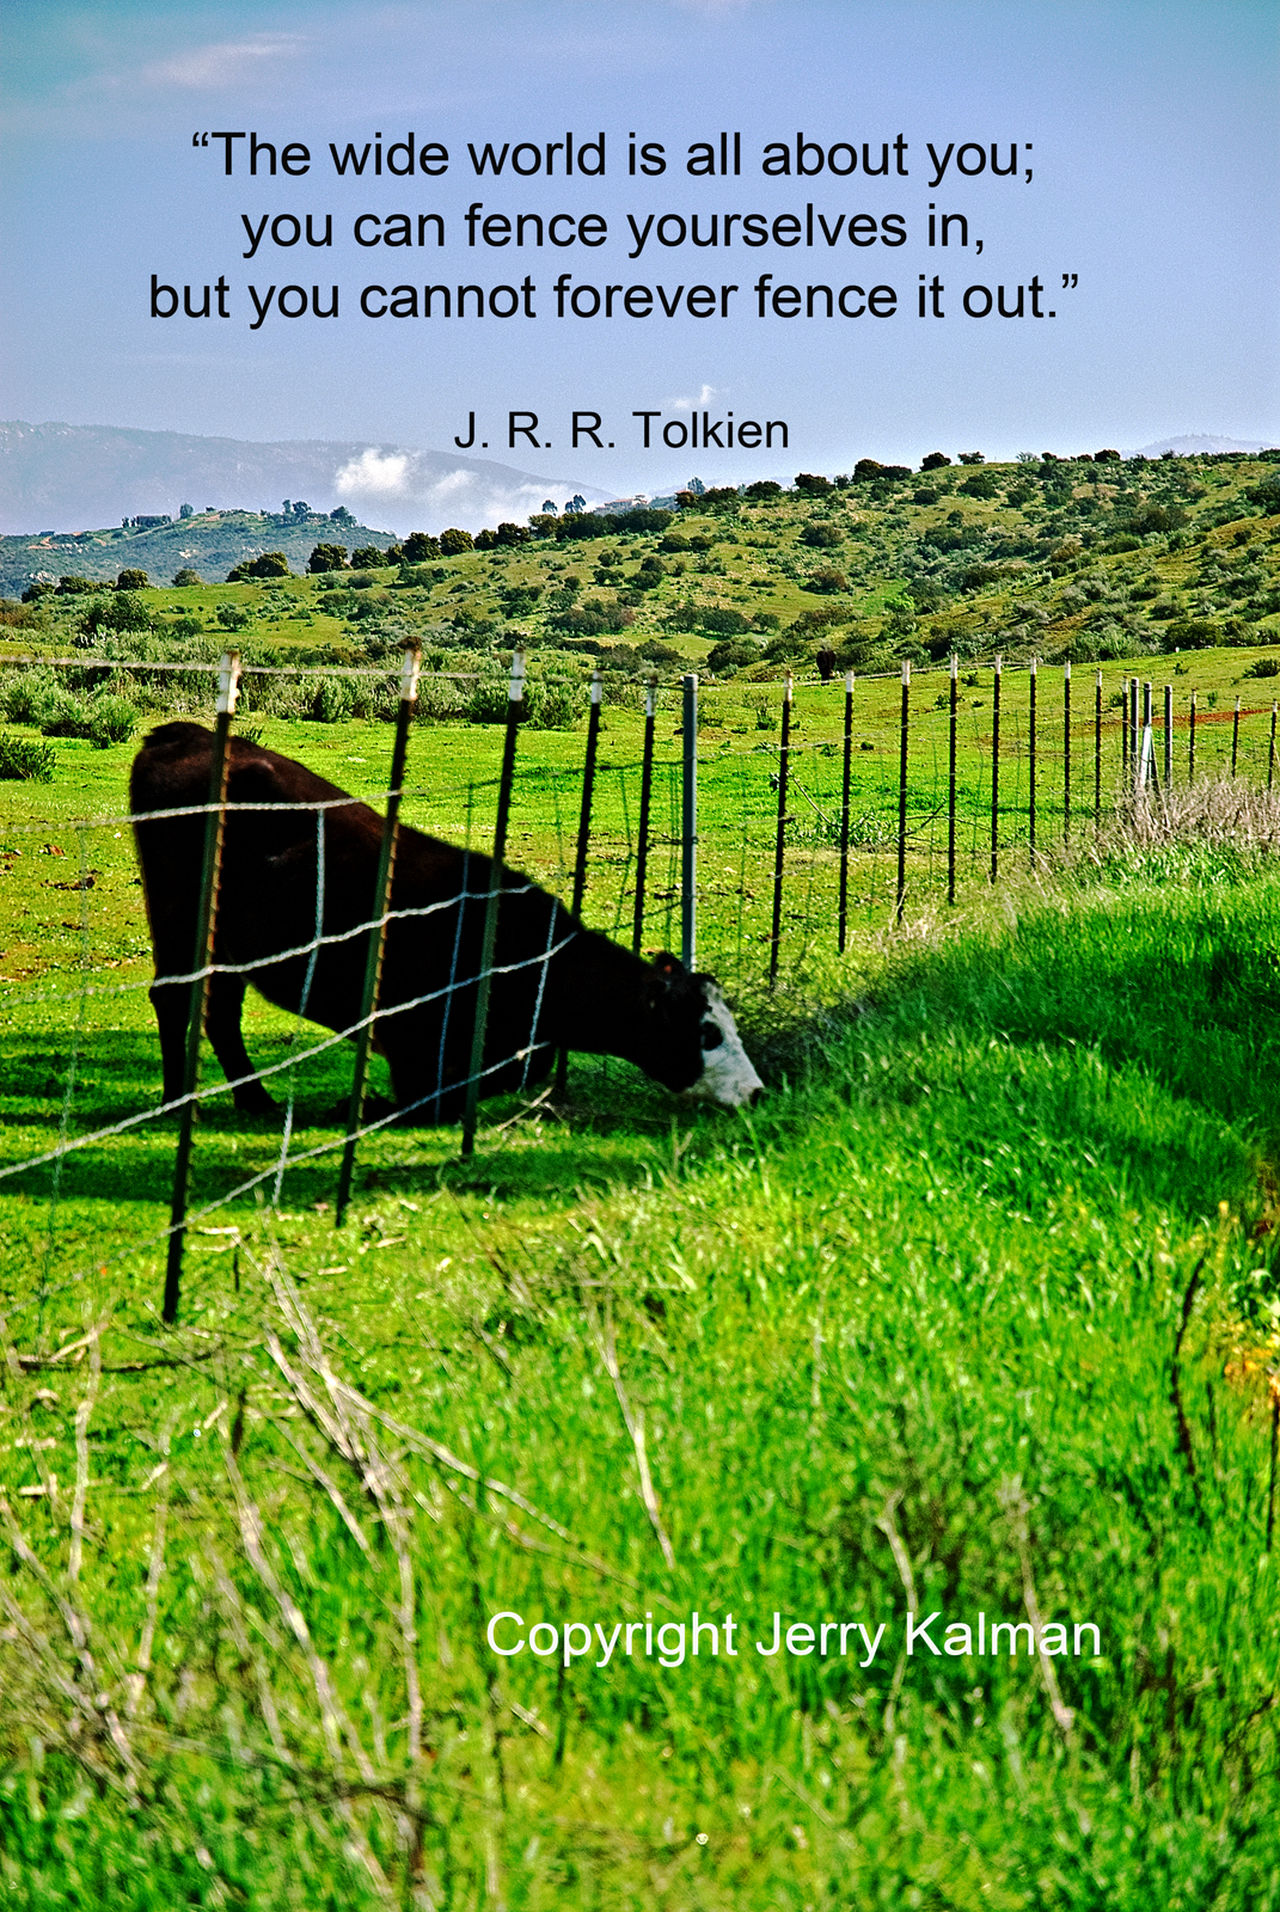 The grass seems to be greener at this pasture in #Bonsall and a fitting #quote by #JRRTolkein. If this #quotograph speaks to you, please share with others Bonsall California Check This Out Cow Grass Gtree Pasture Q Quotes Toledo